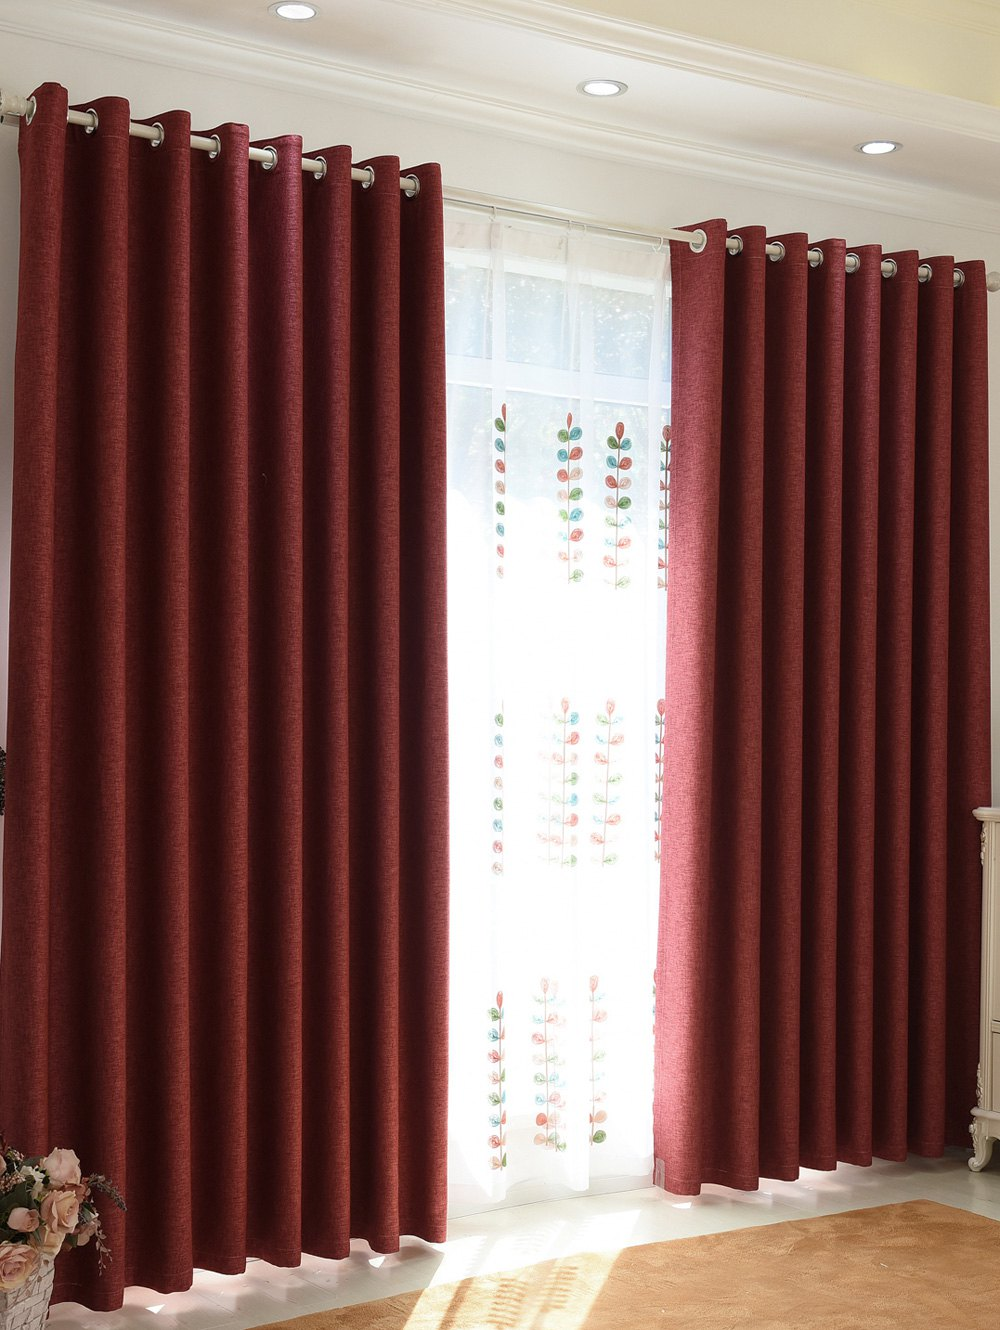 Curtains Ideas curtain grommets wholesale : Grommets Ring Roller Blackout Curtain, CRYSTAL CREAM, CM in Window ...